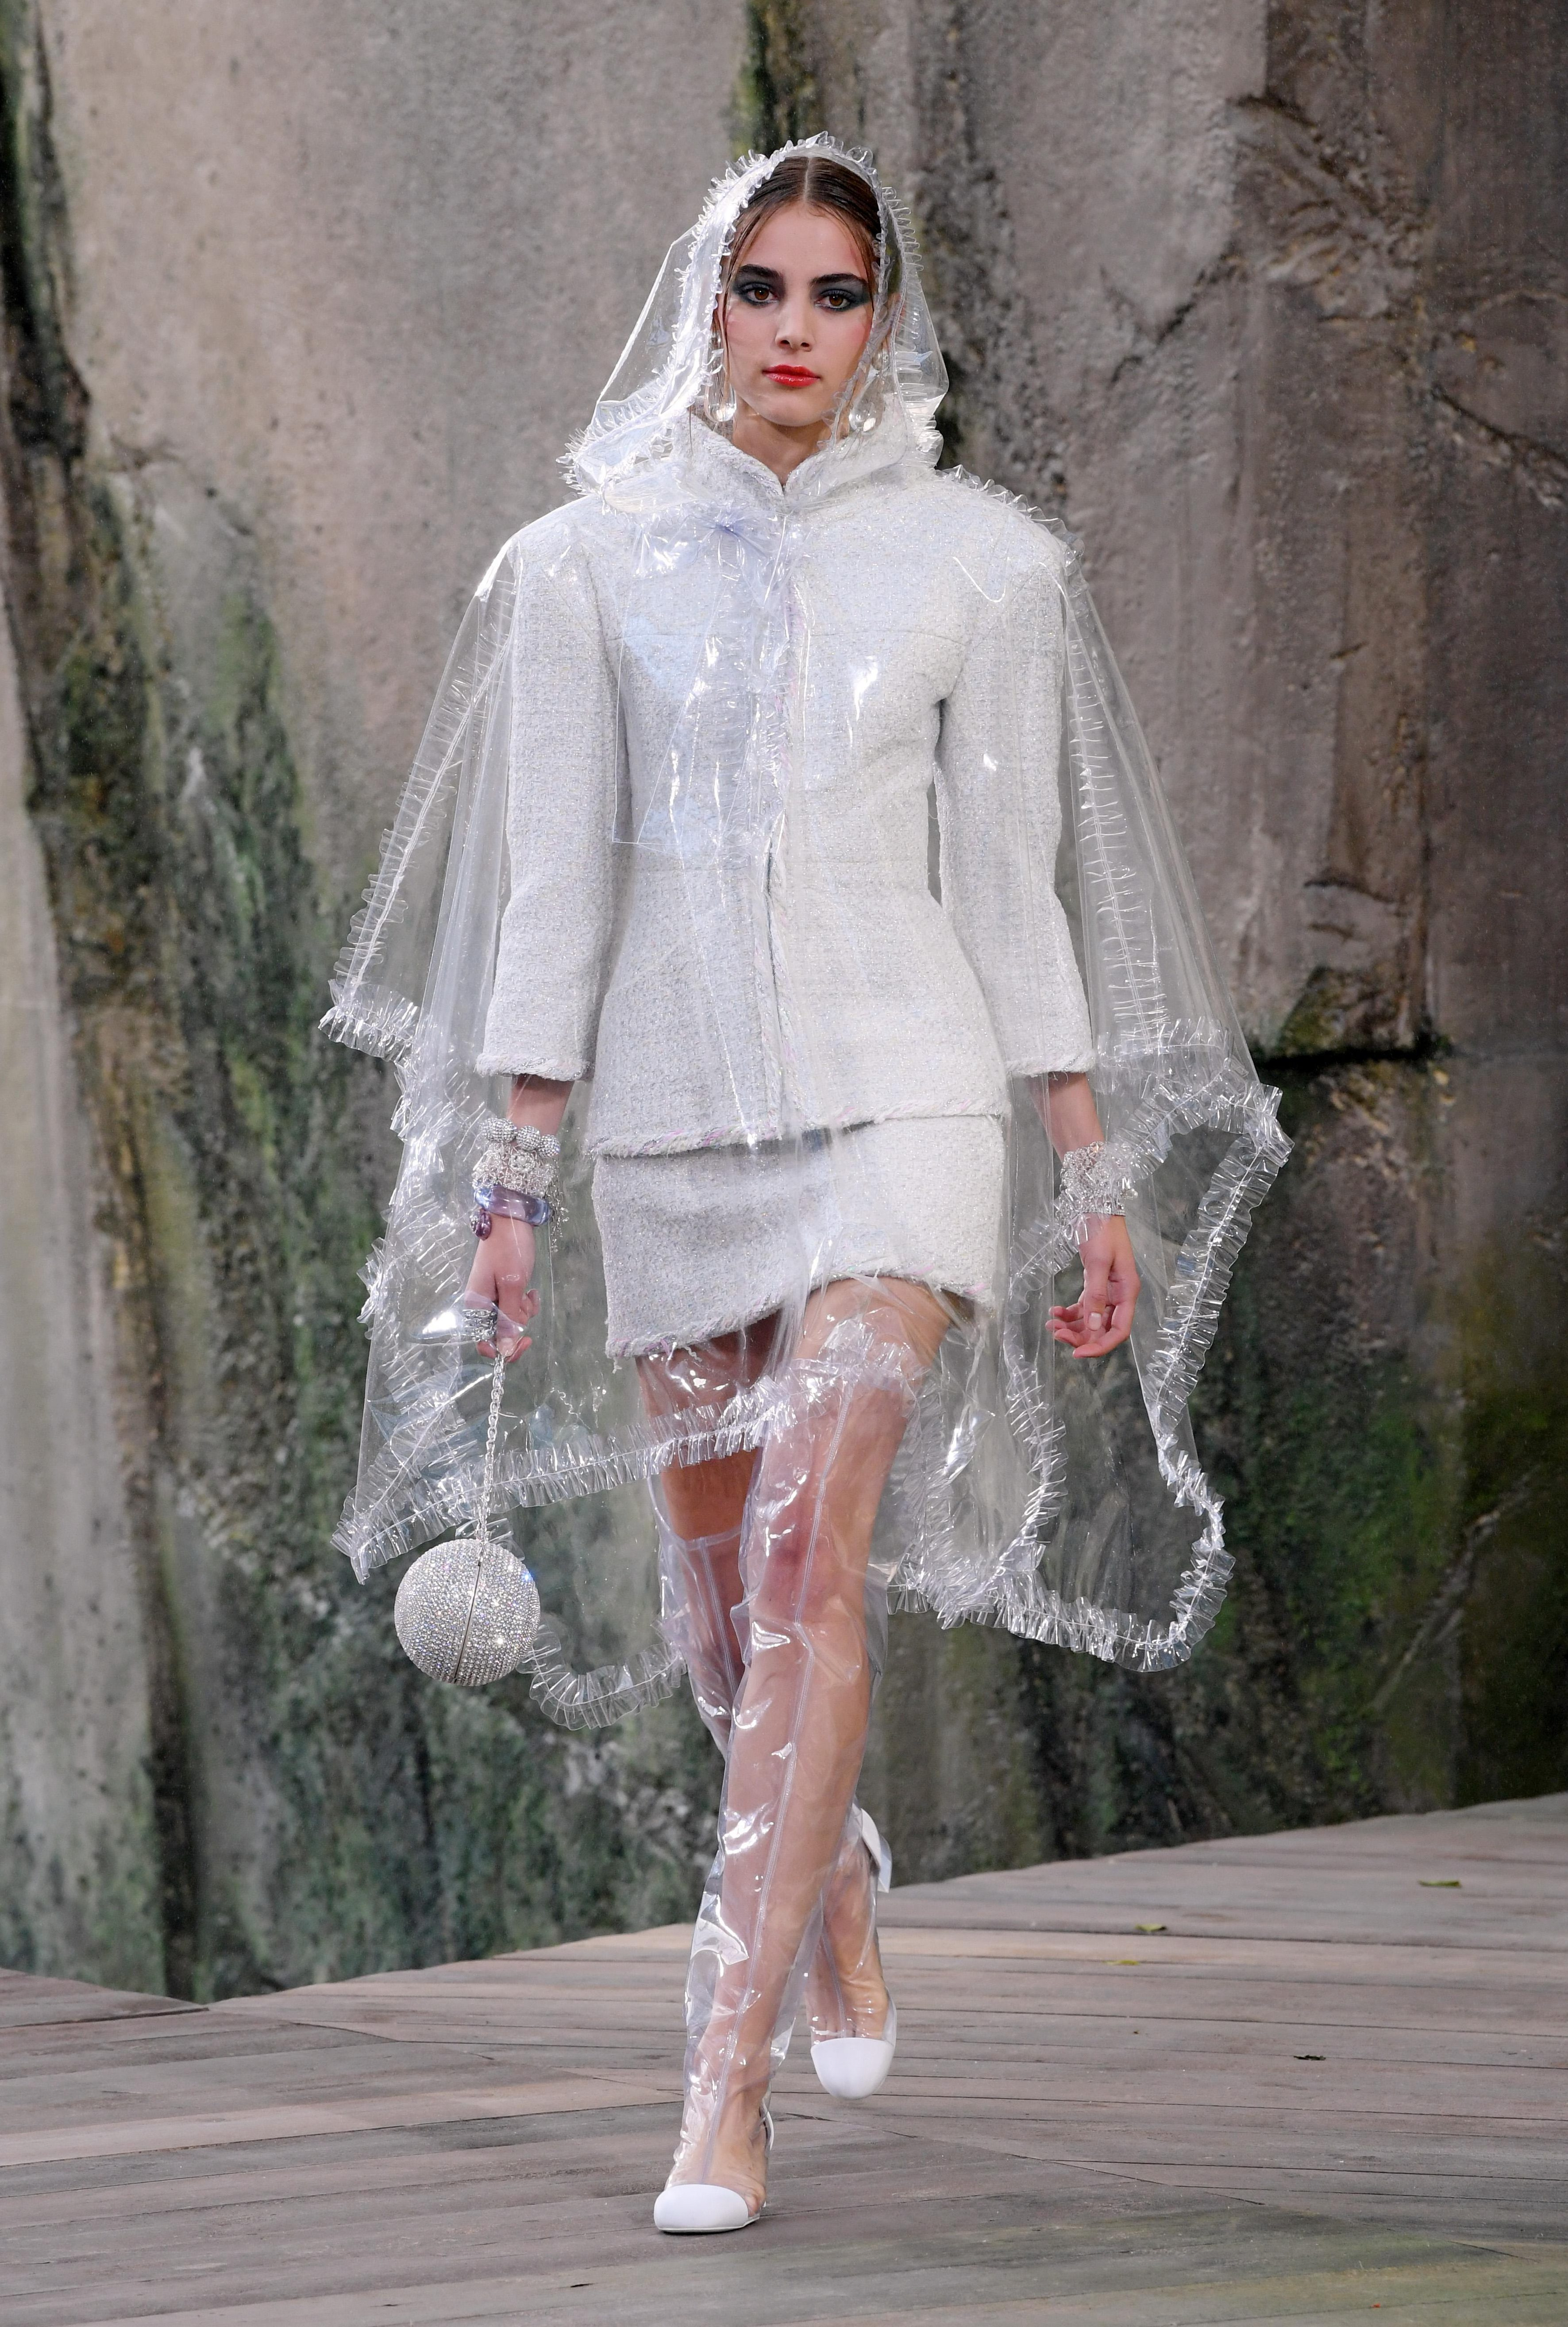 Chanel's collection at PFW focused around transparent PVC